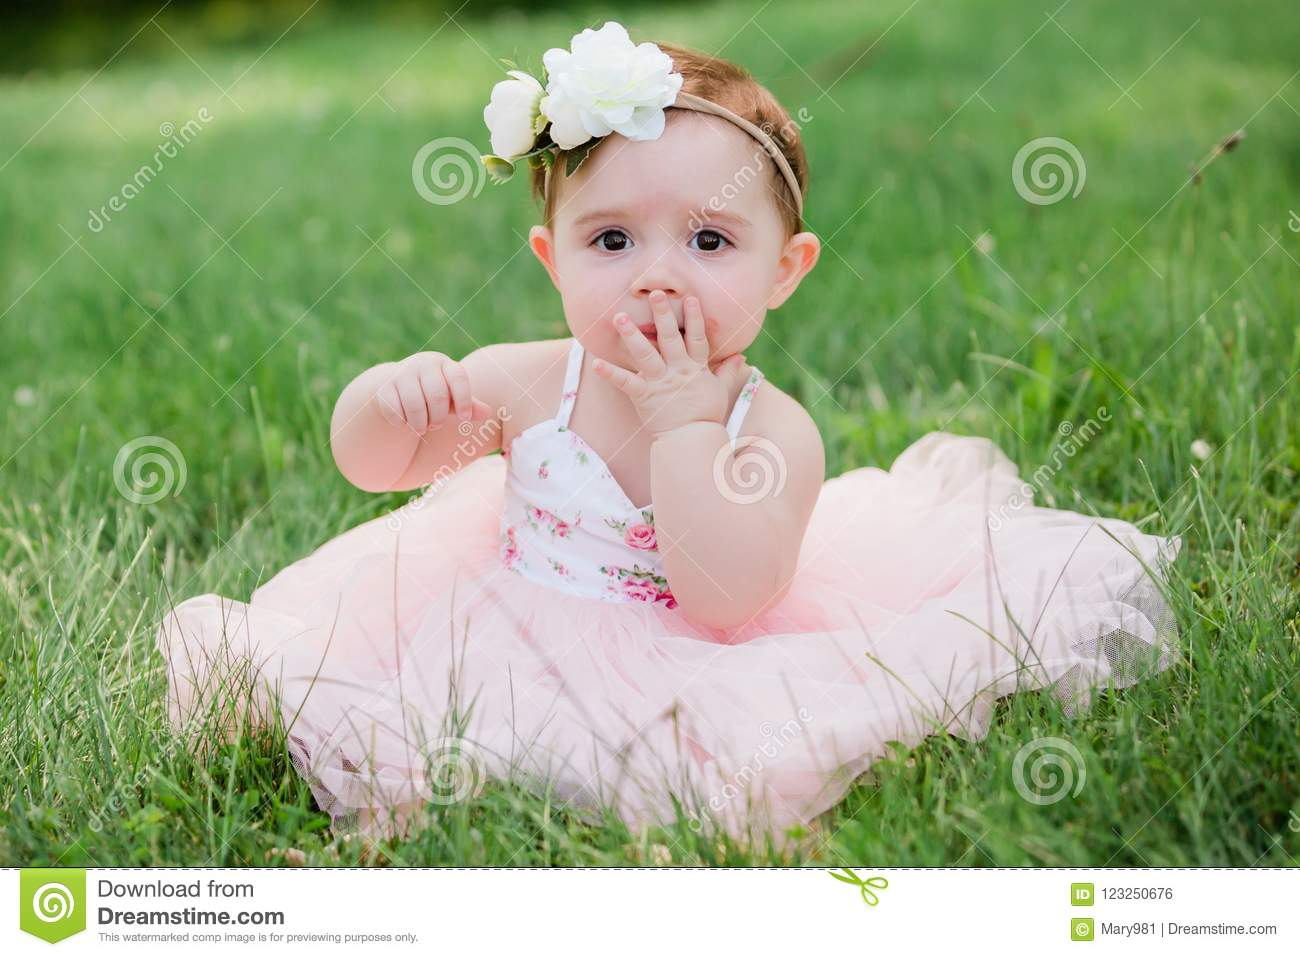 Cute one year old caucasian girl outside in grass wearing a pink summer  dress and floral headband